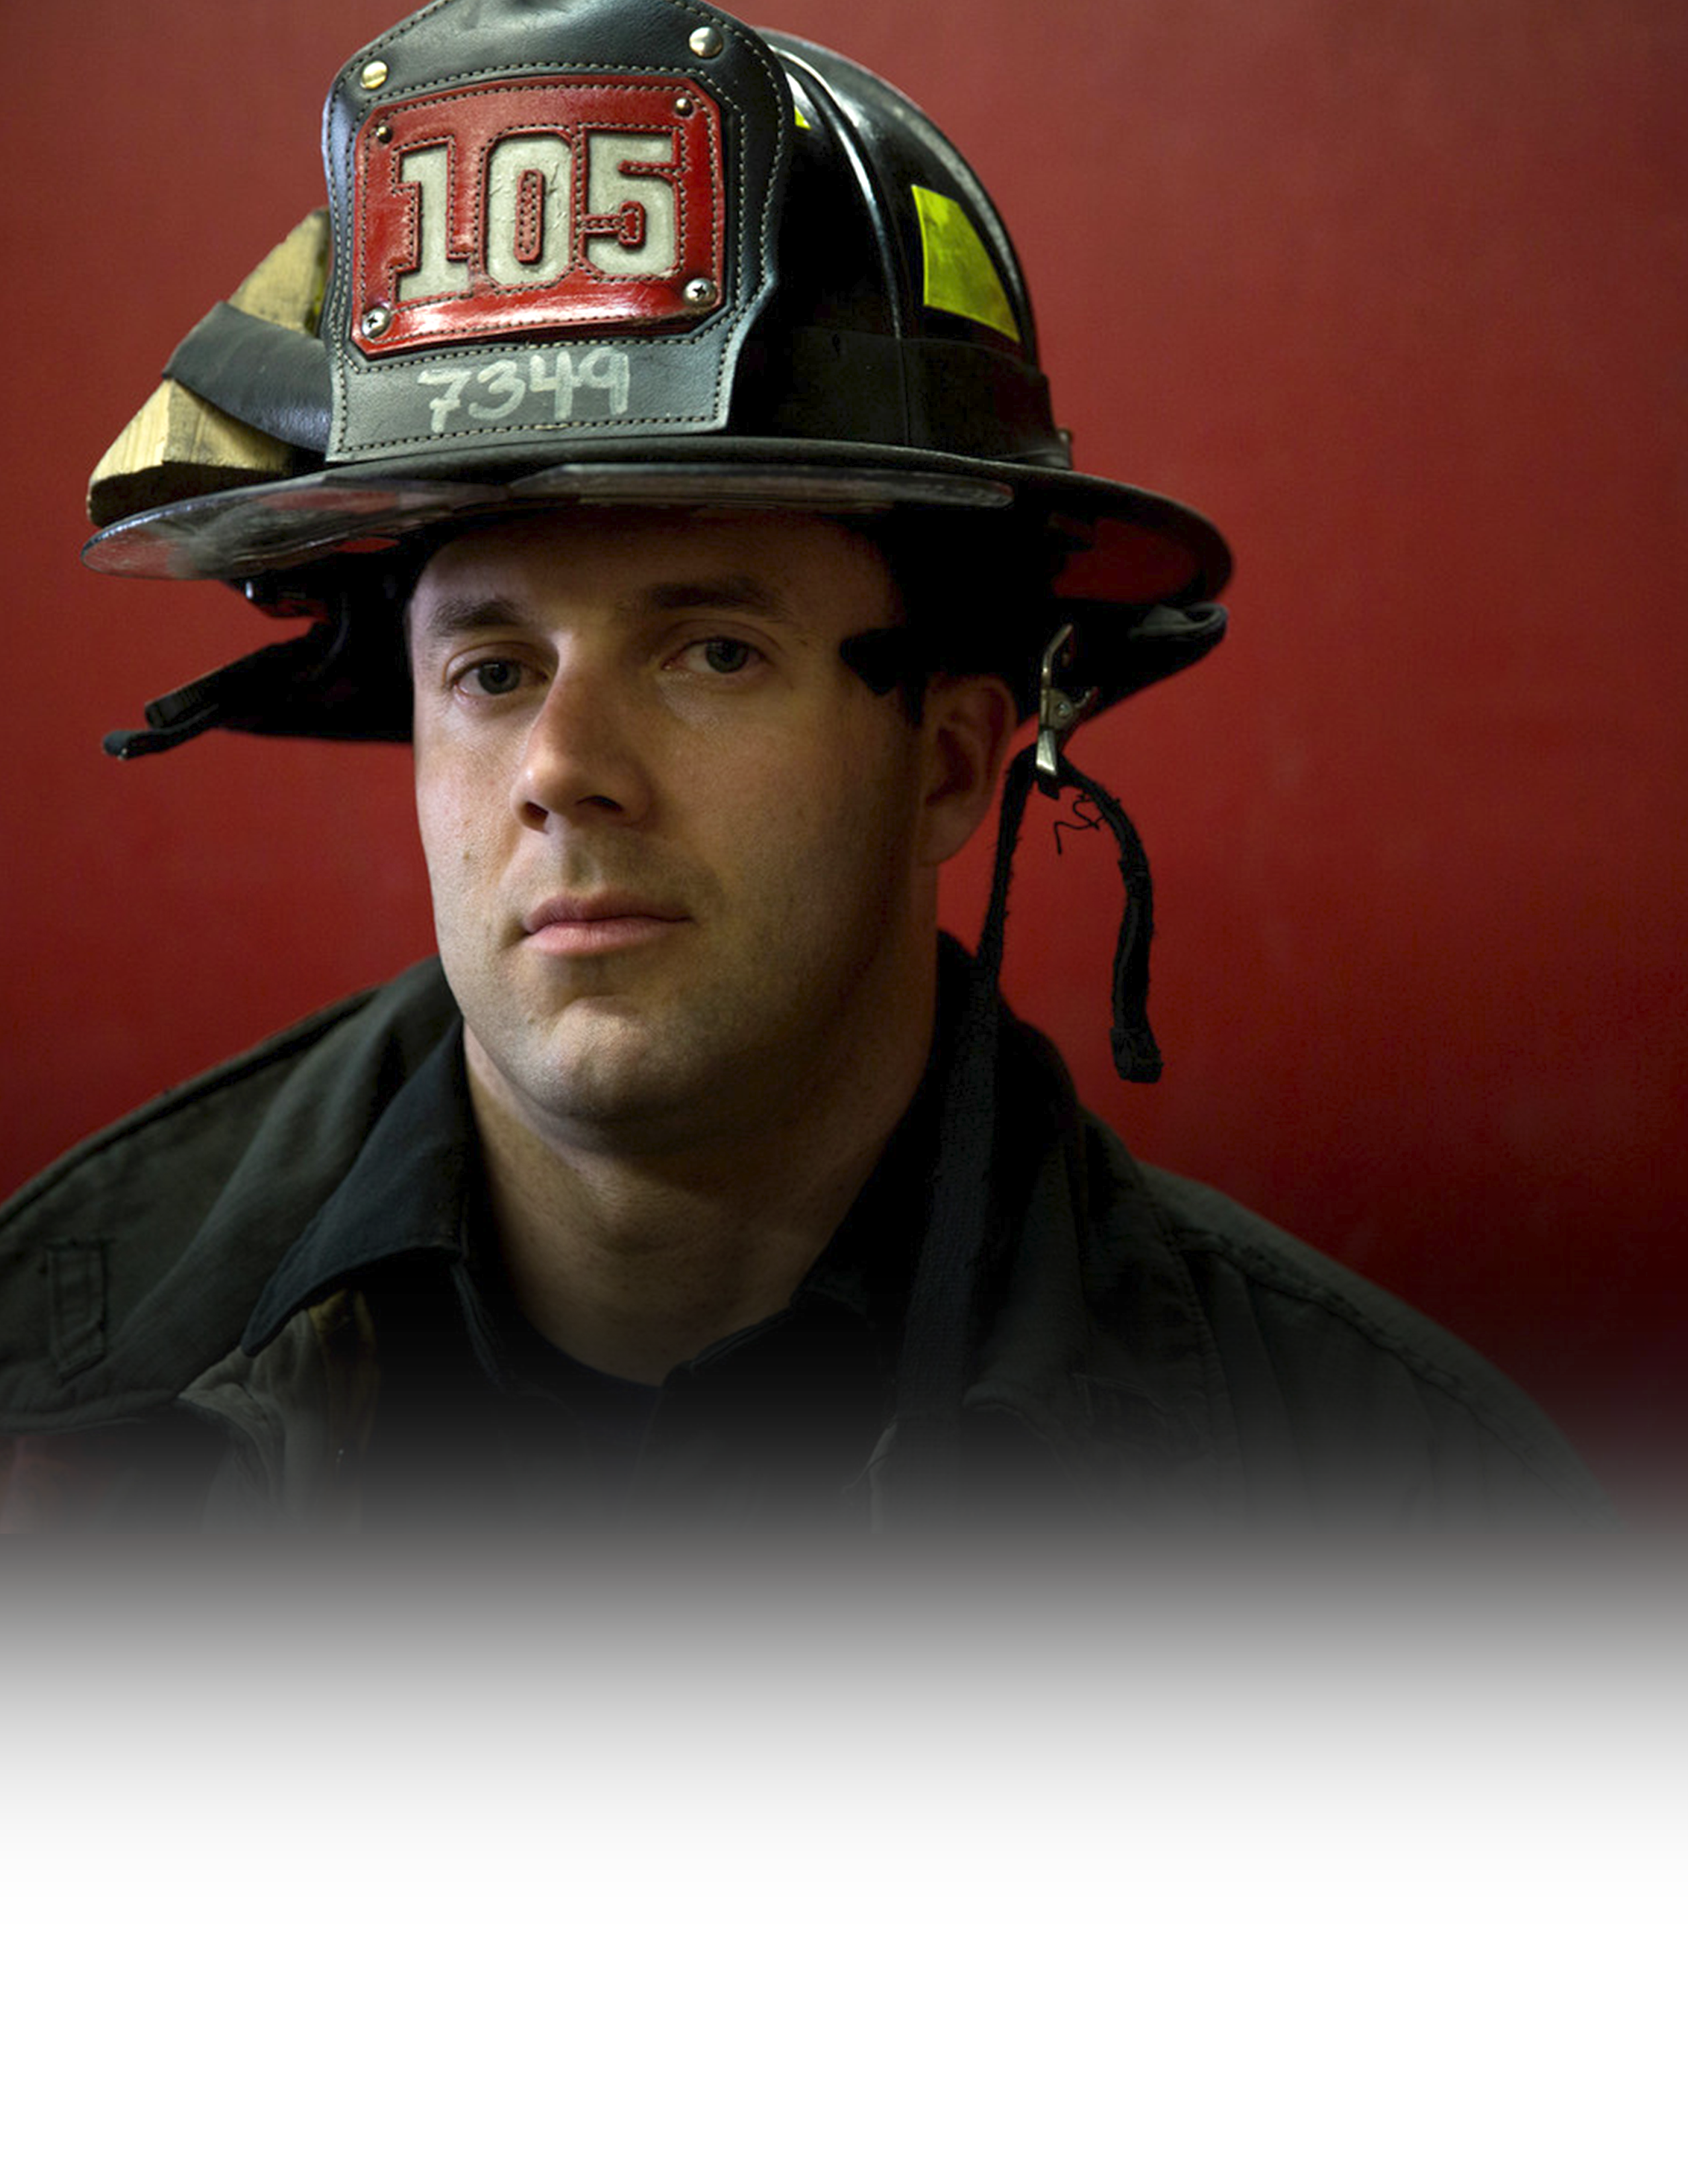 FDNY Firefighter Crowley.